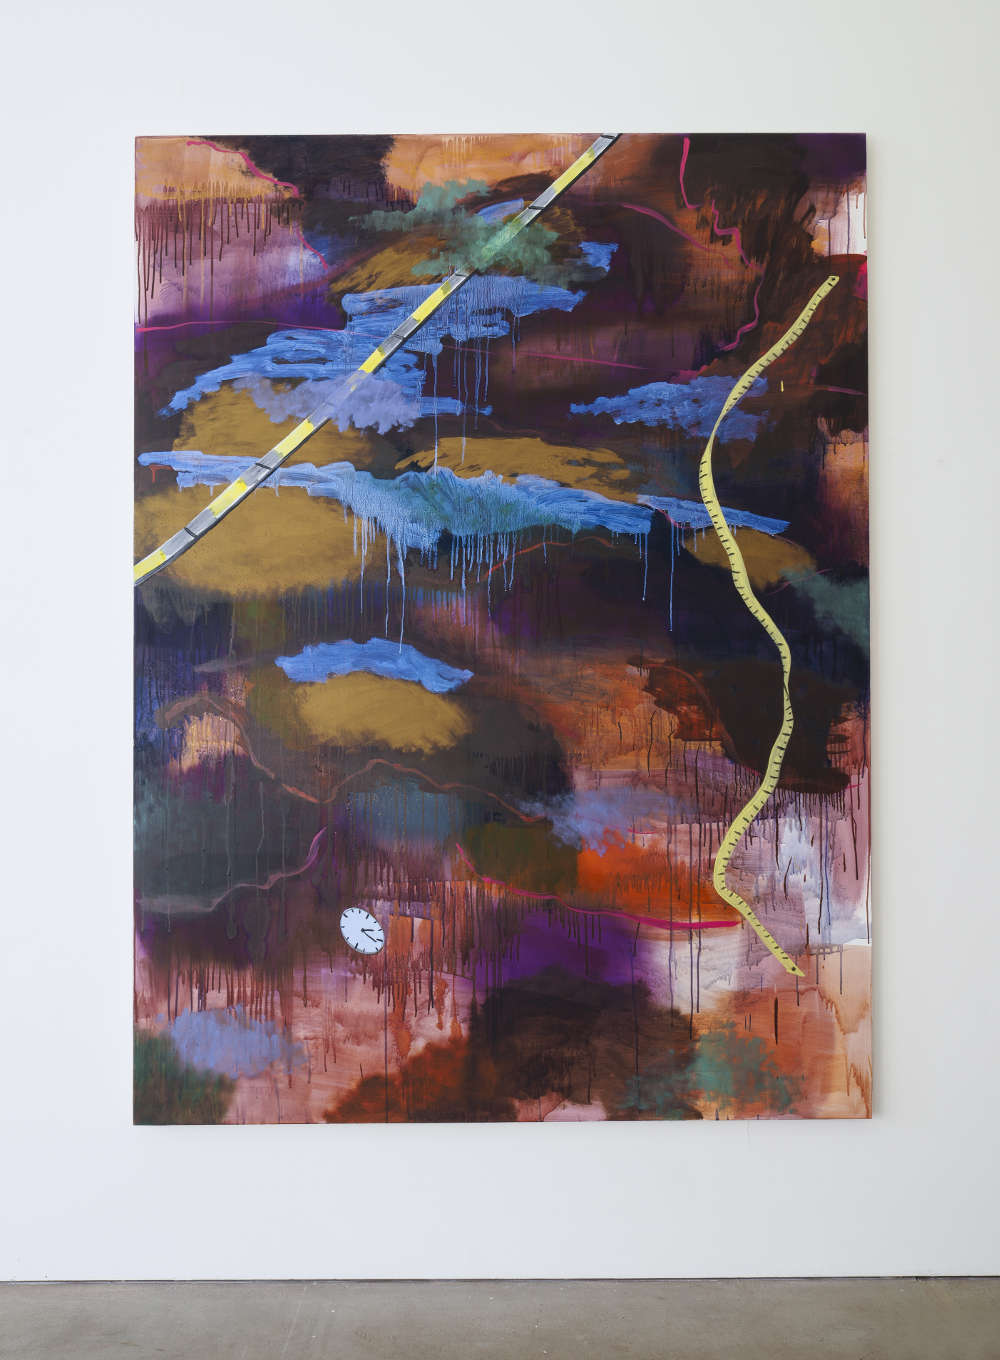 Alice Browne, New--------Place, 2018, acrylic, oil and mica on canvas, 200cm x 150cm